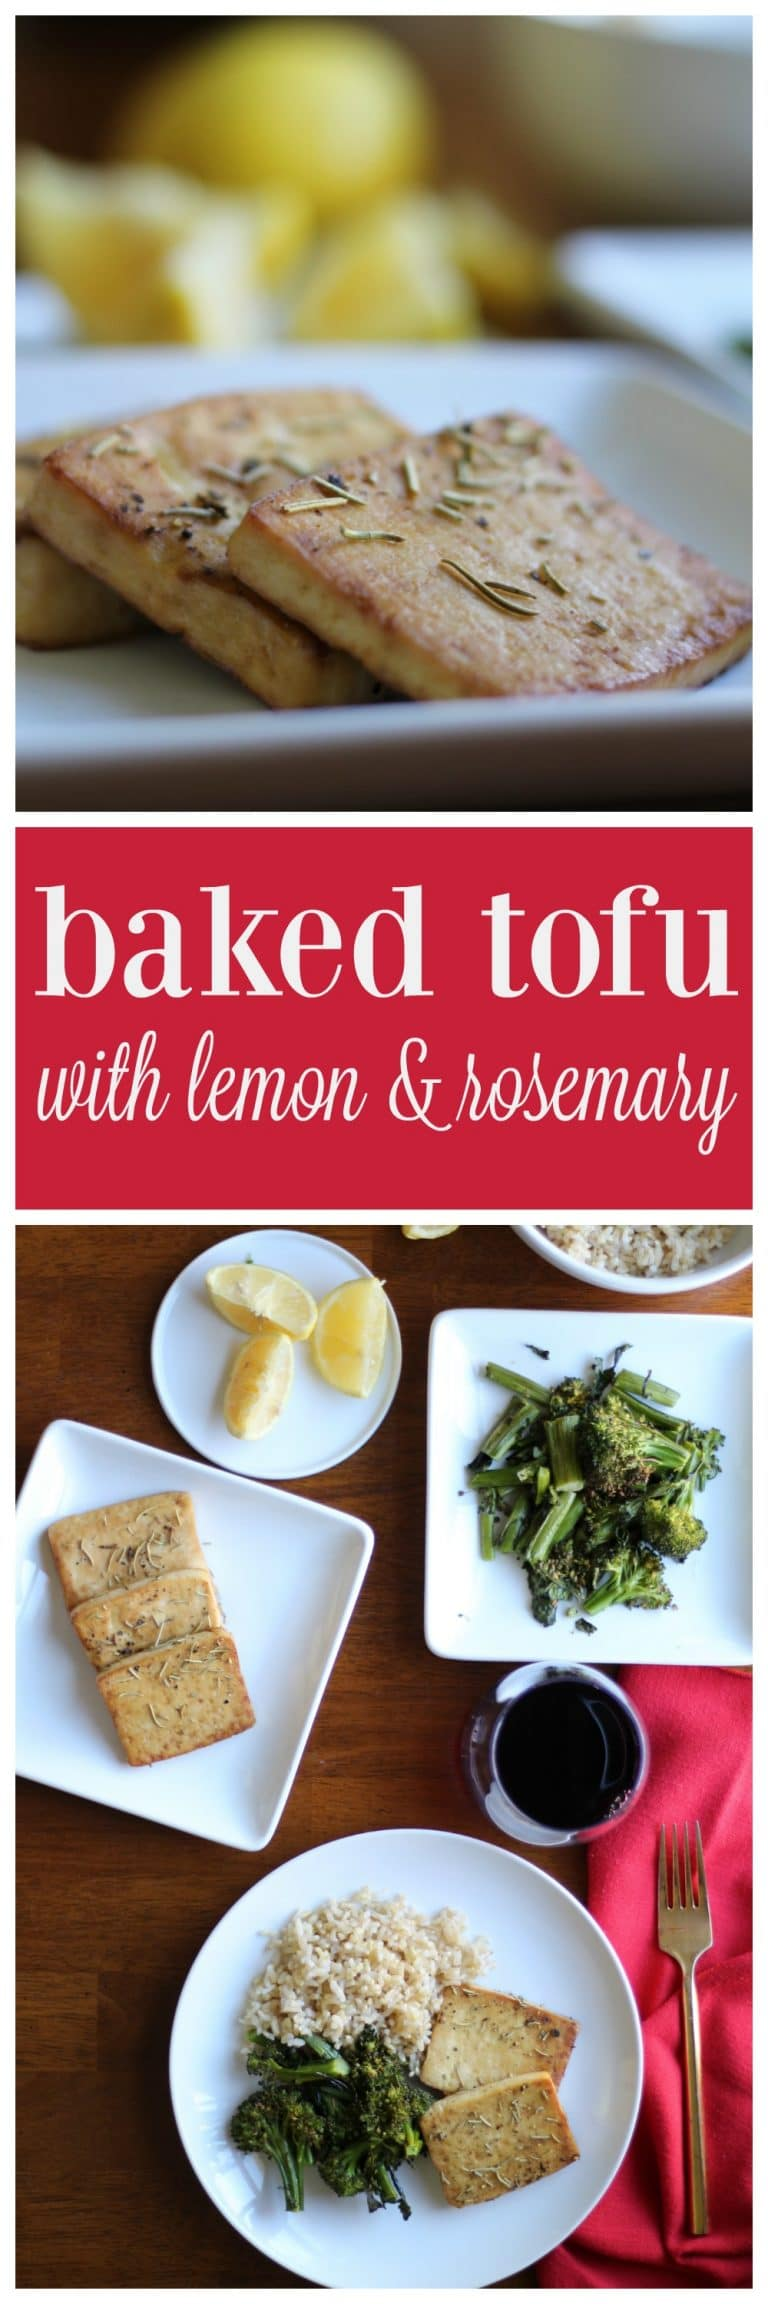 Overhead lemon rosemary tofu slices on plates with broccolini and brown rice. Plus text.